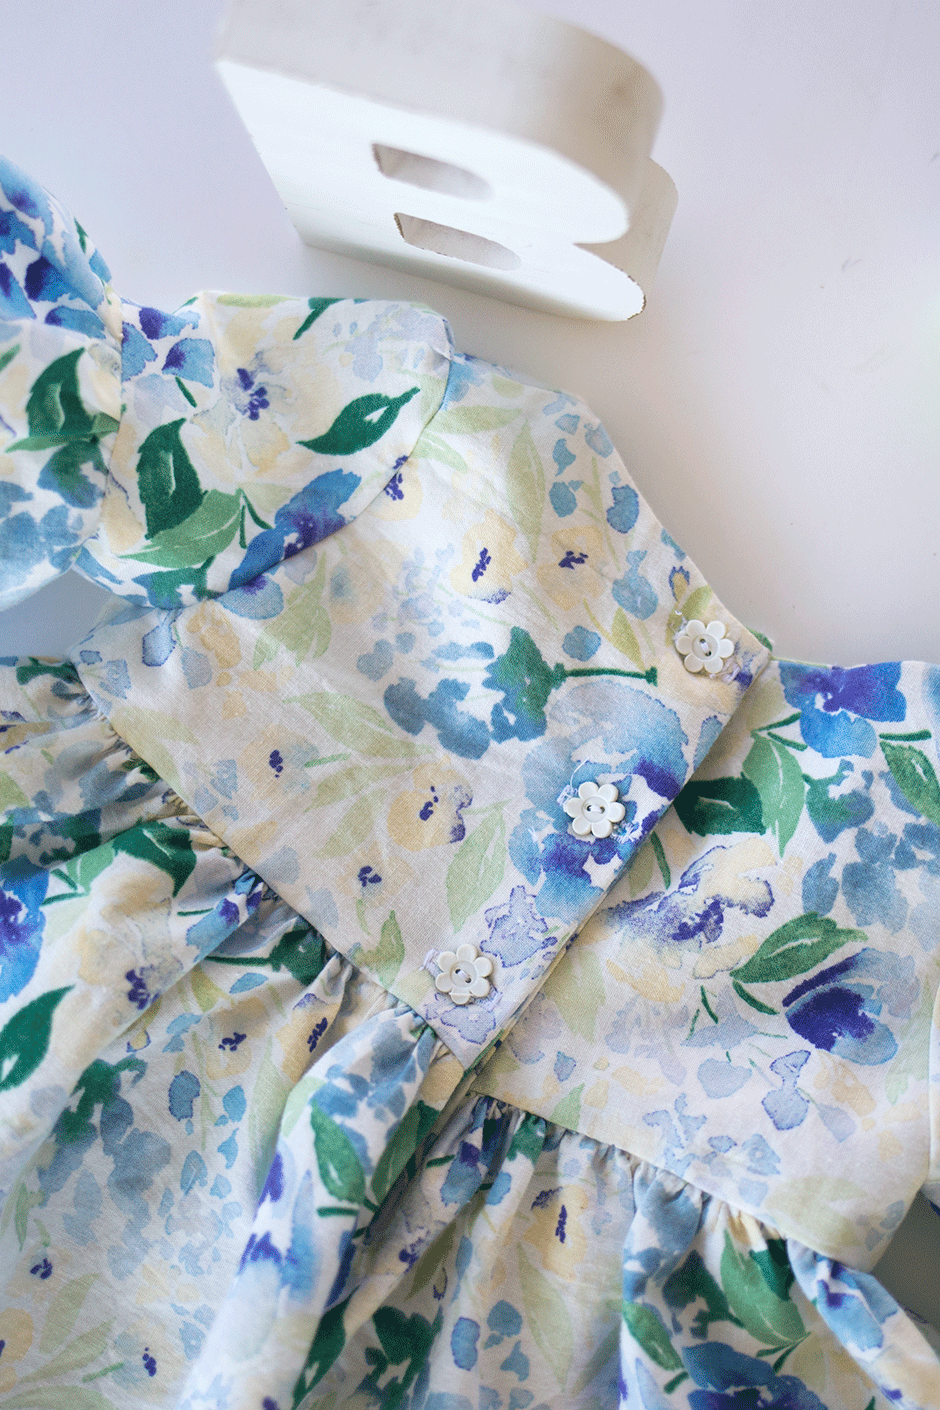 This simple pattern hack will show you how to make a darling on-trend bell sleeve baby dress DIY for the little bundle of joy! Take a break from pink by using this beautiful blue and green floral fabric; it's the perfect addition to any little girls' wardrobe. Read on for the ruffle sleeve tutorial and details on this gorgeous quilting cotton.